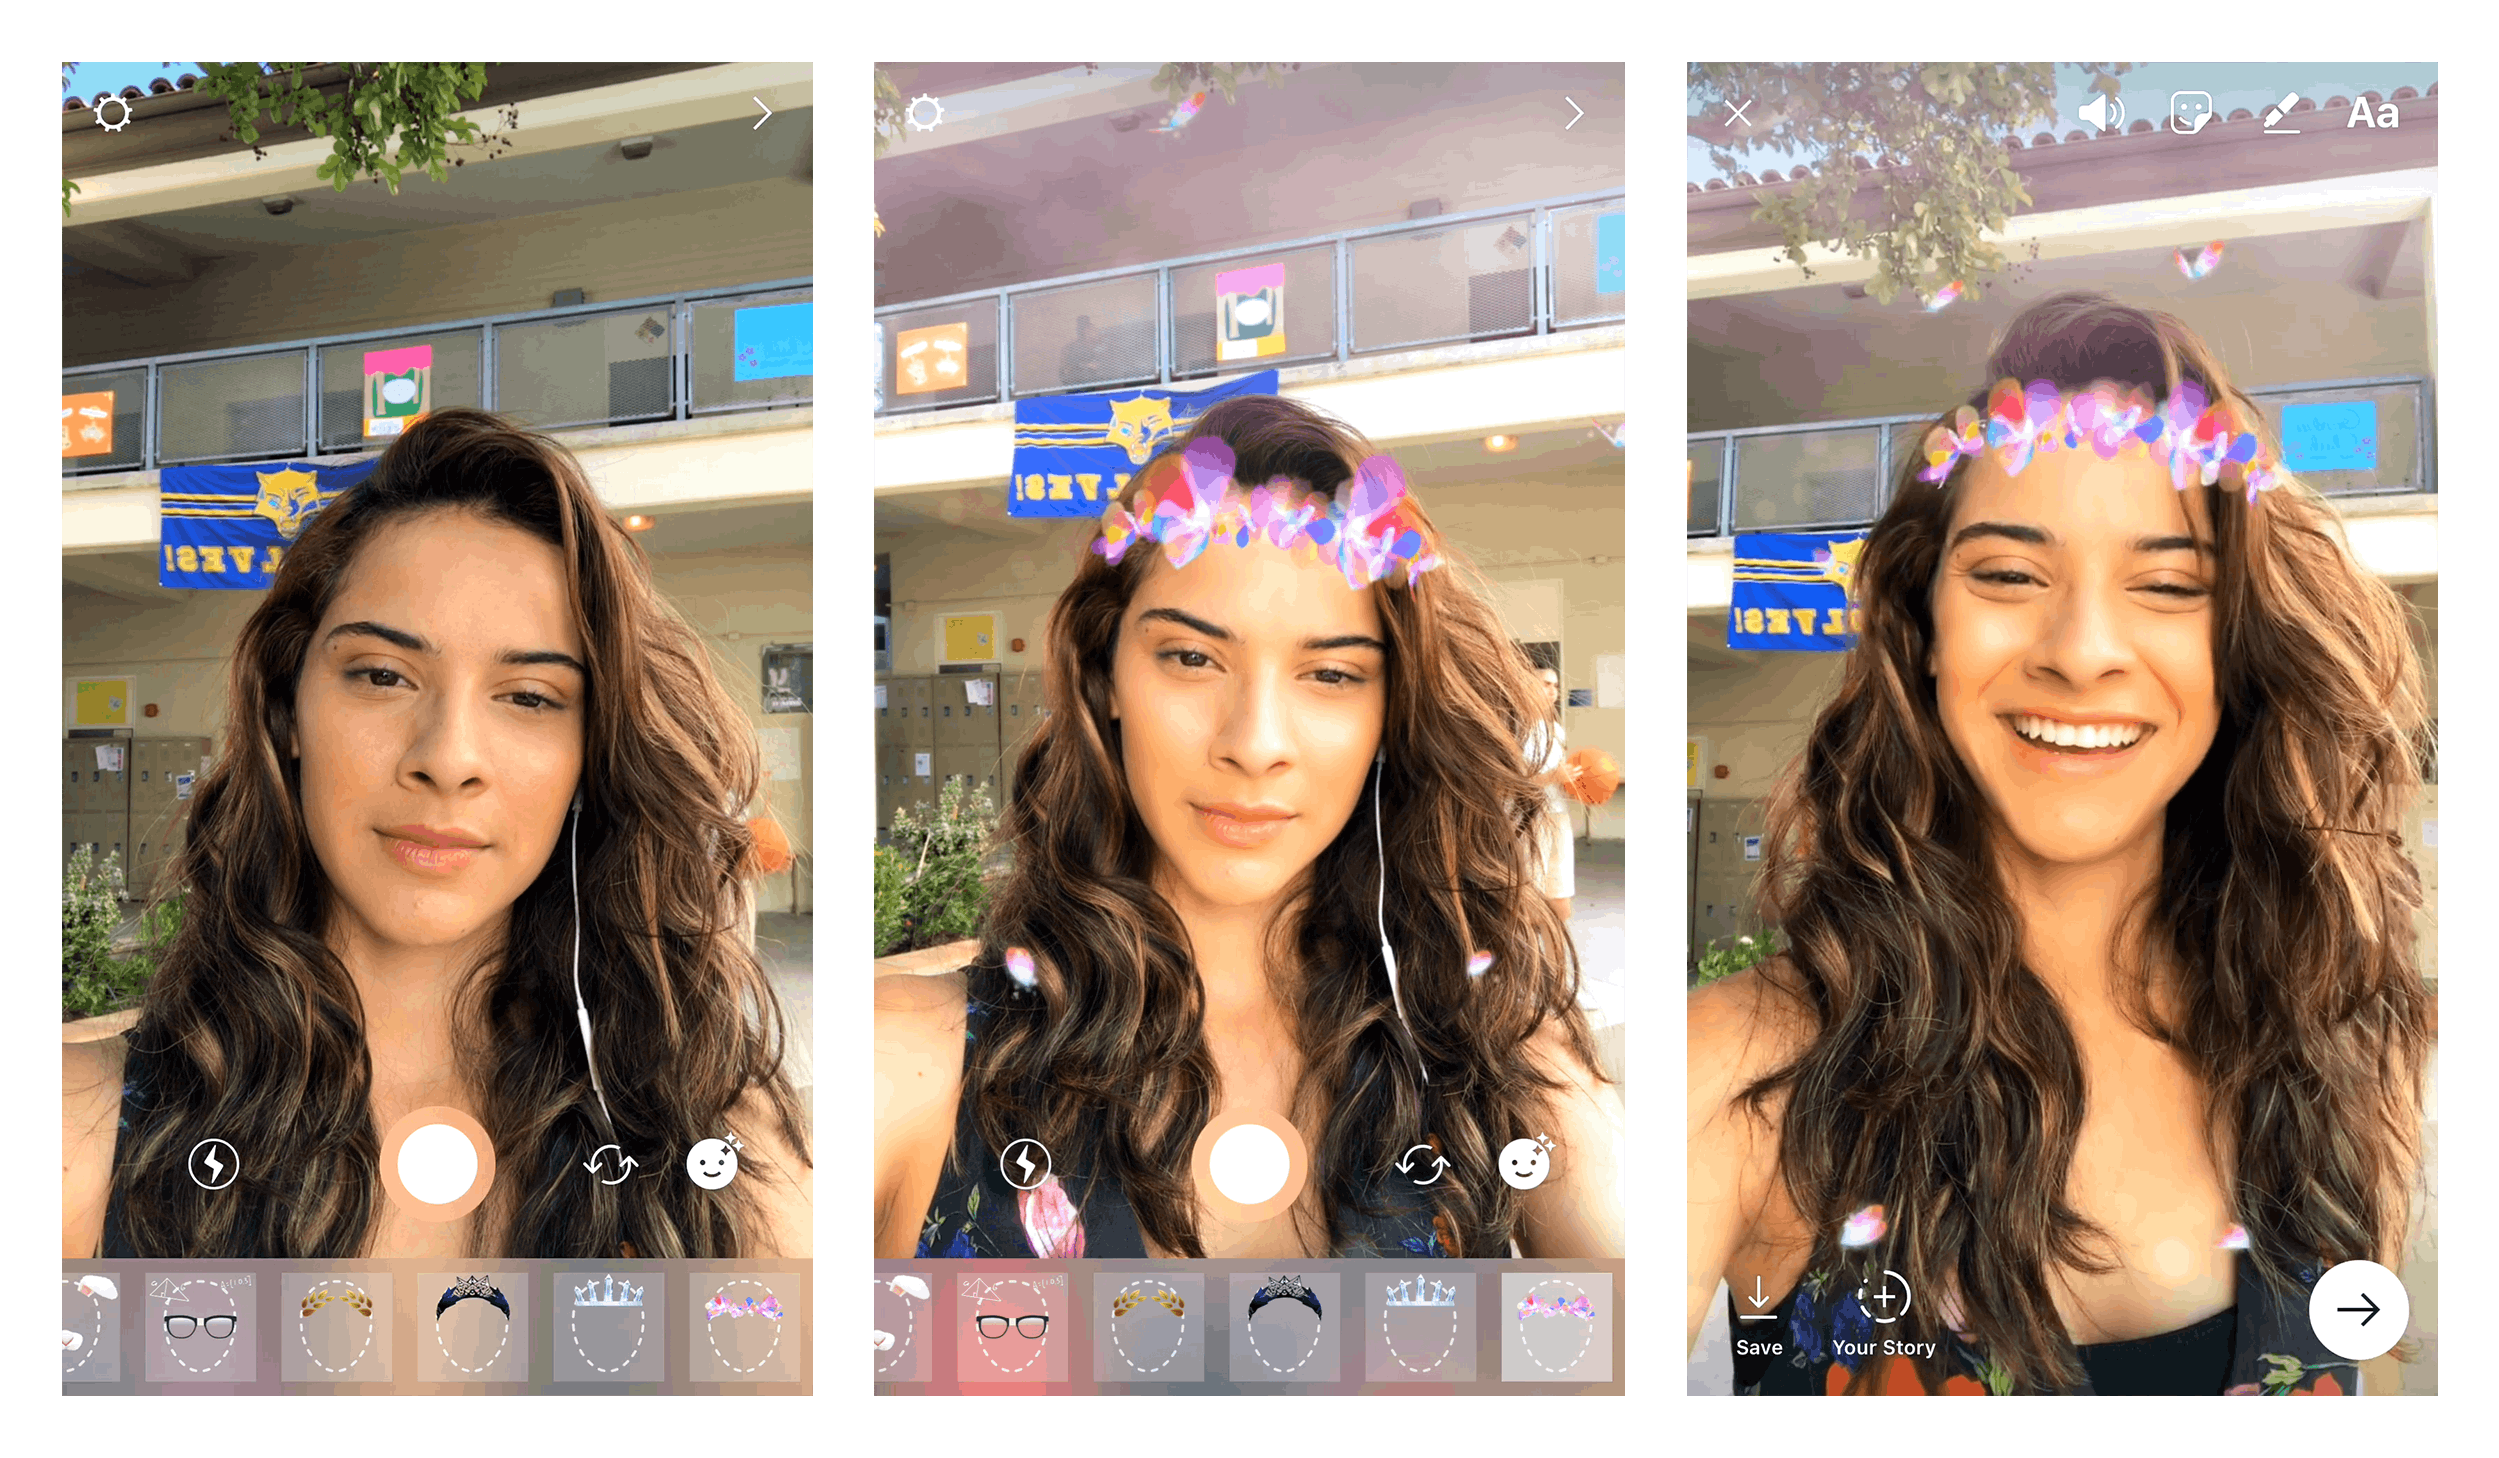 Instagram copies Snapchat again, adds camera filters